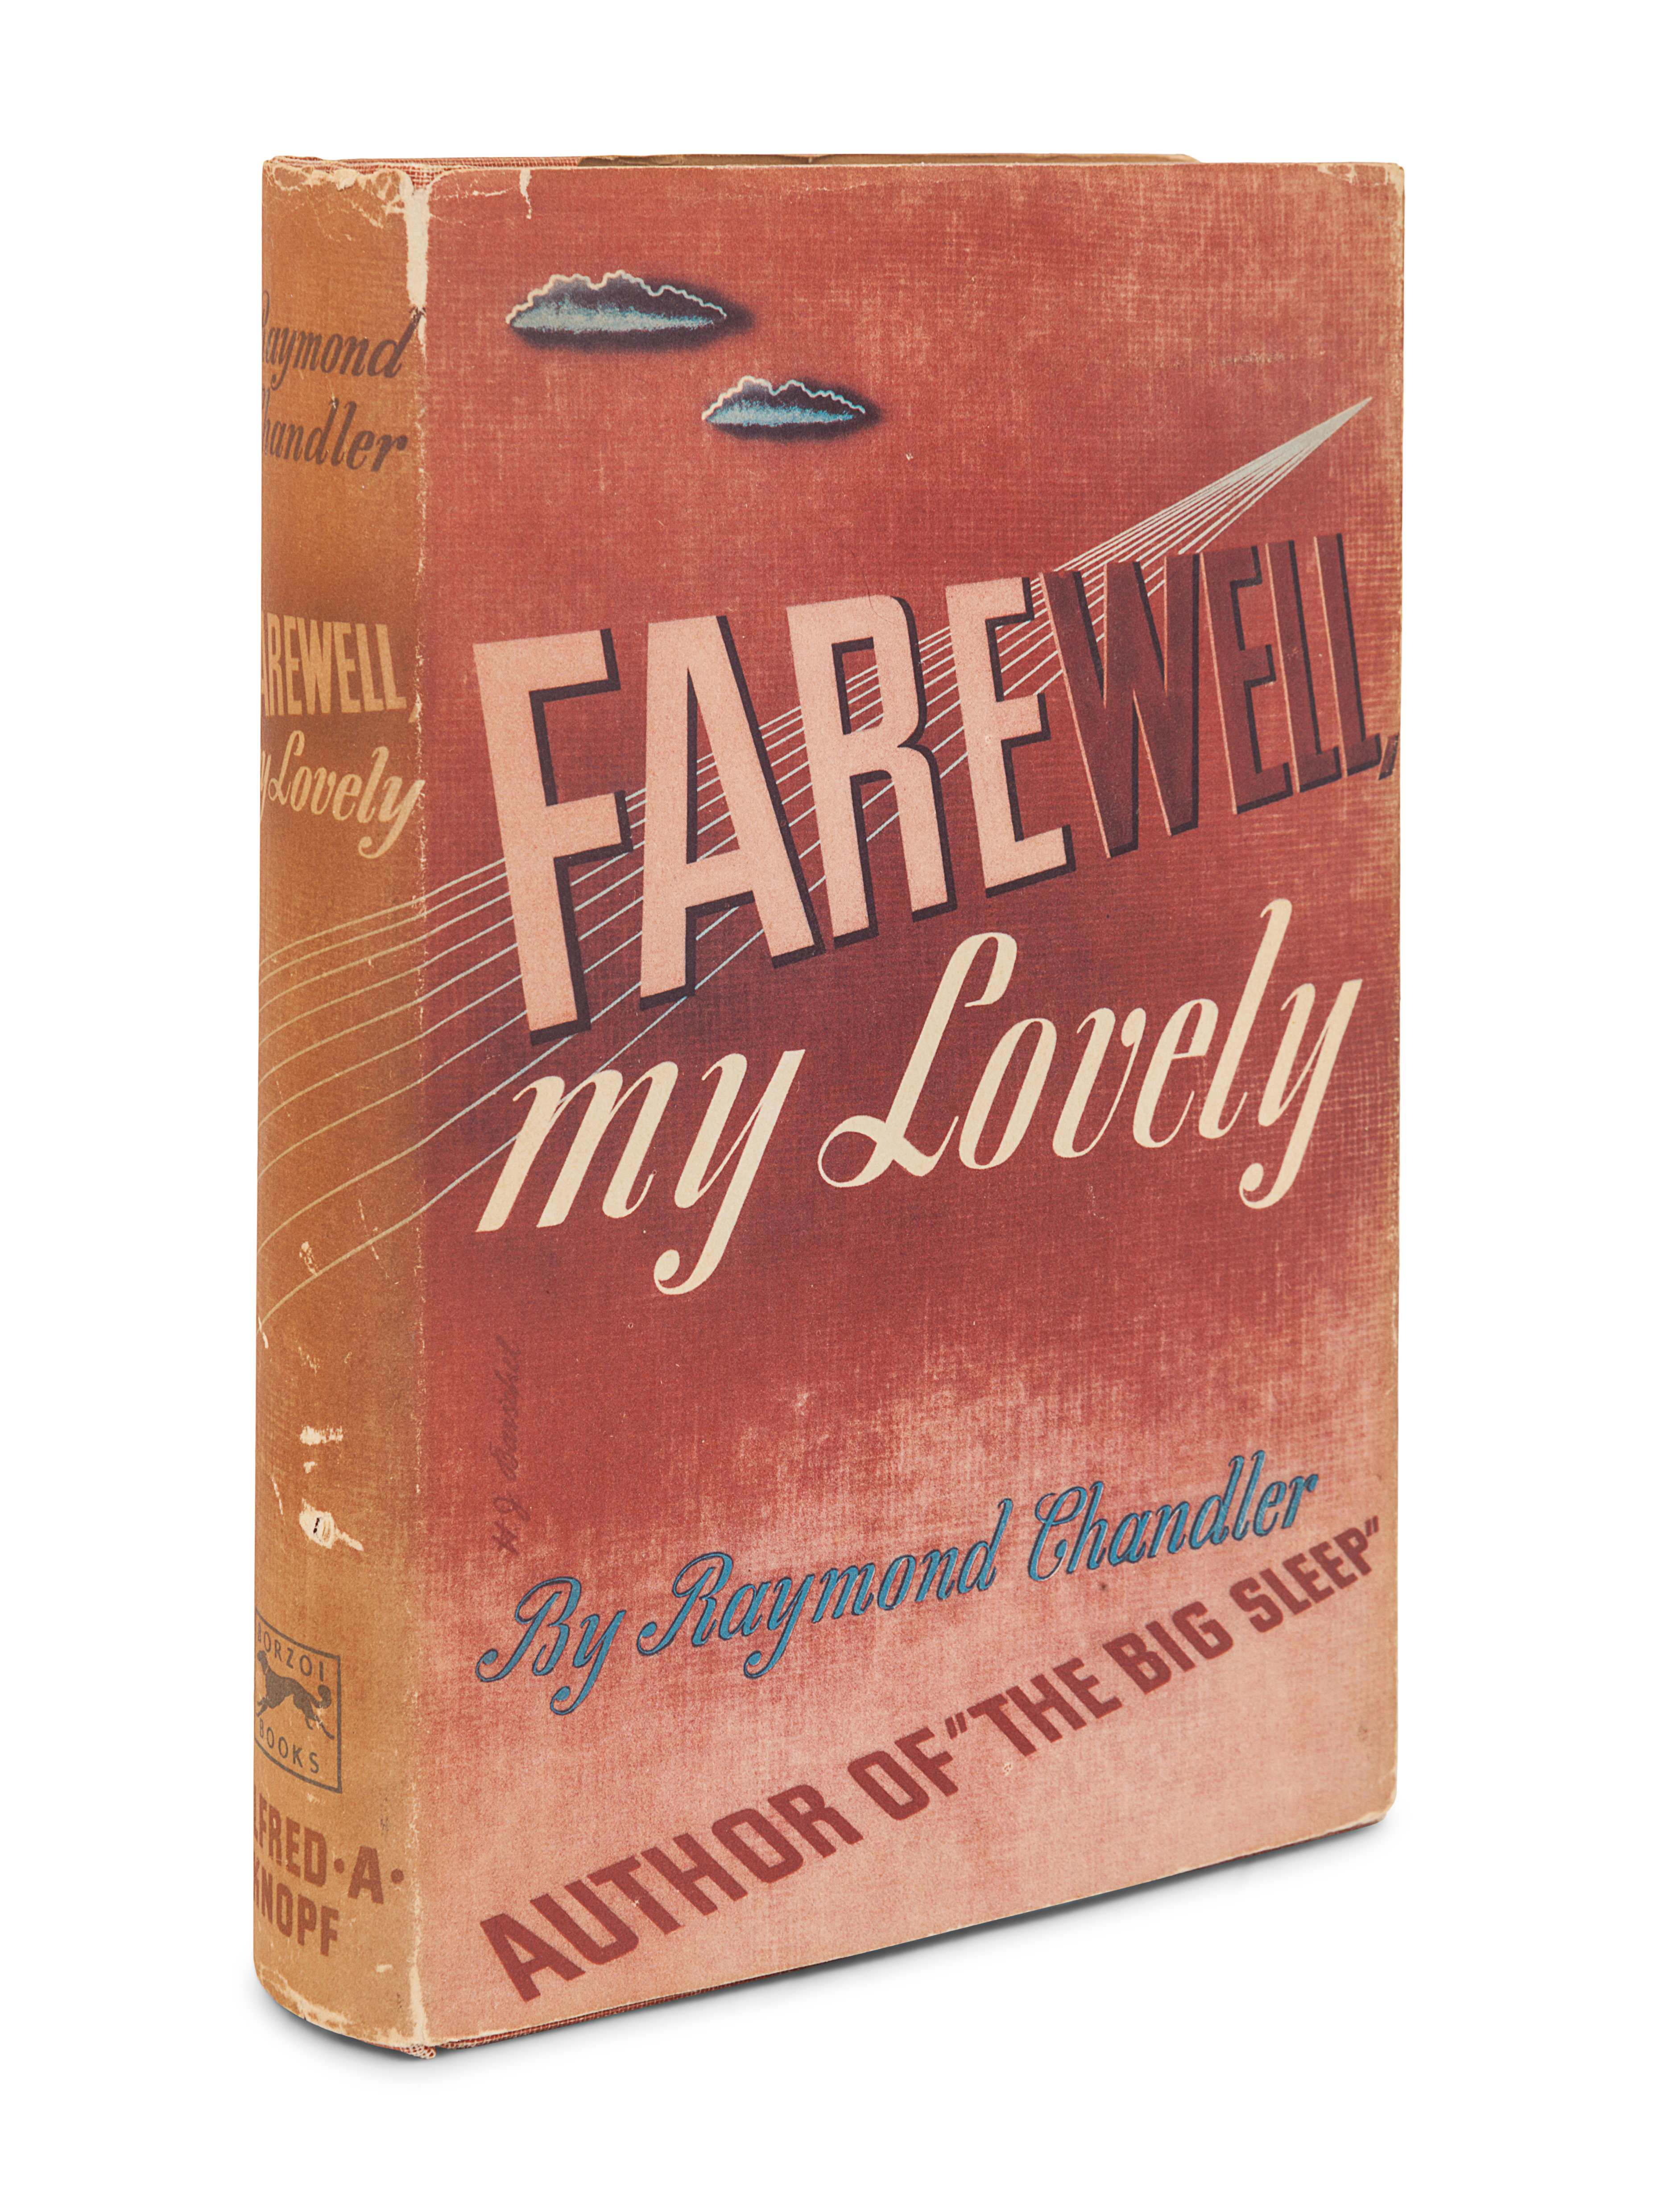 CHANDLER, Raymond (1888-1959). Farewell, My Lovely. New York: Alfred A. Knopf, 1940. - Image 2 of 3